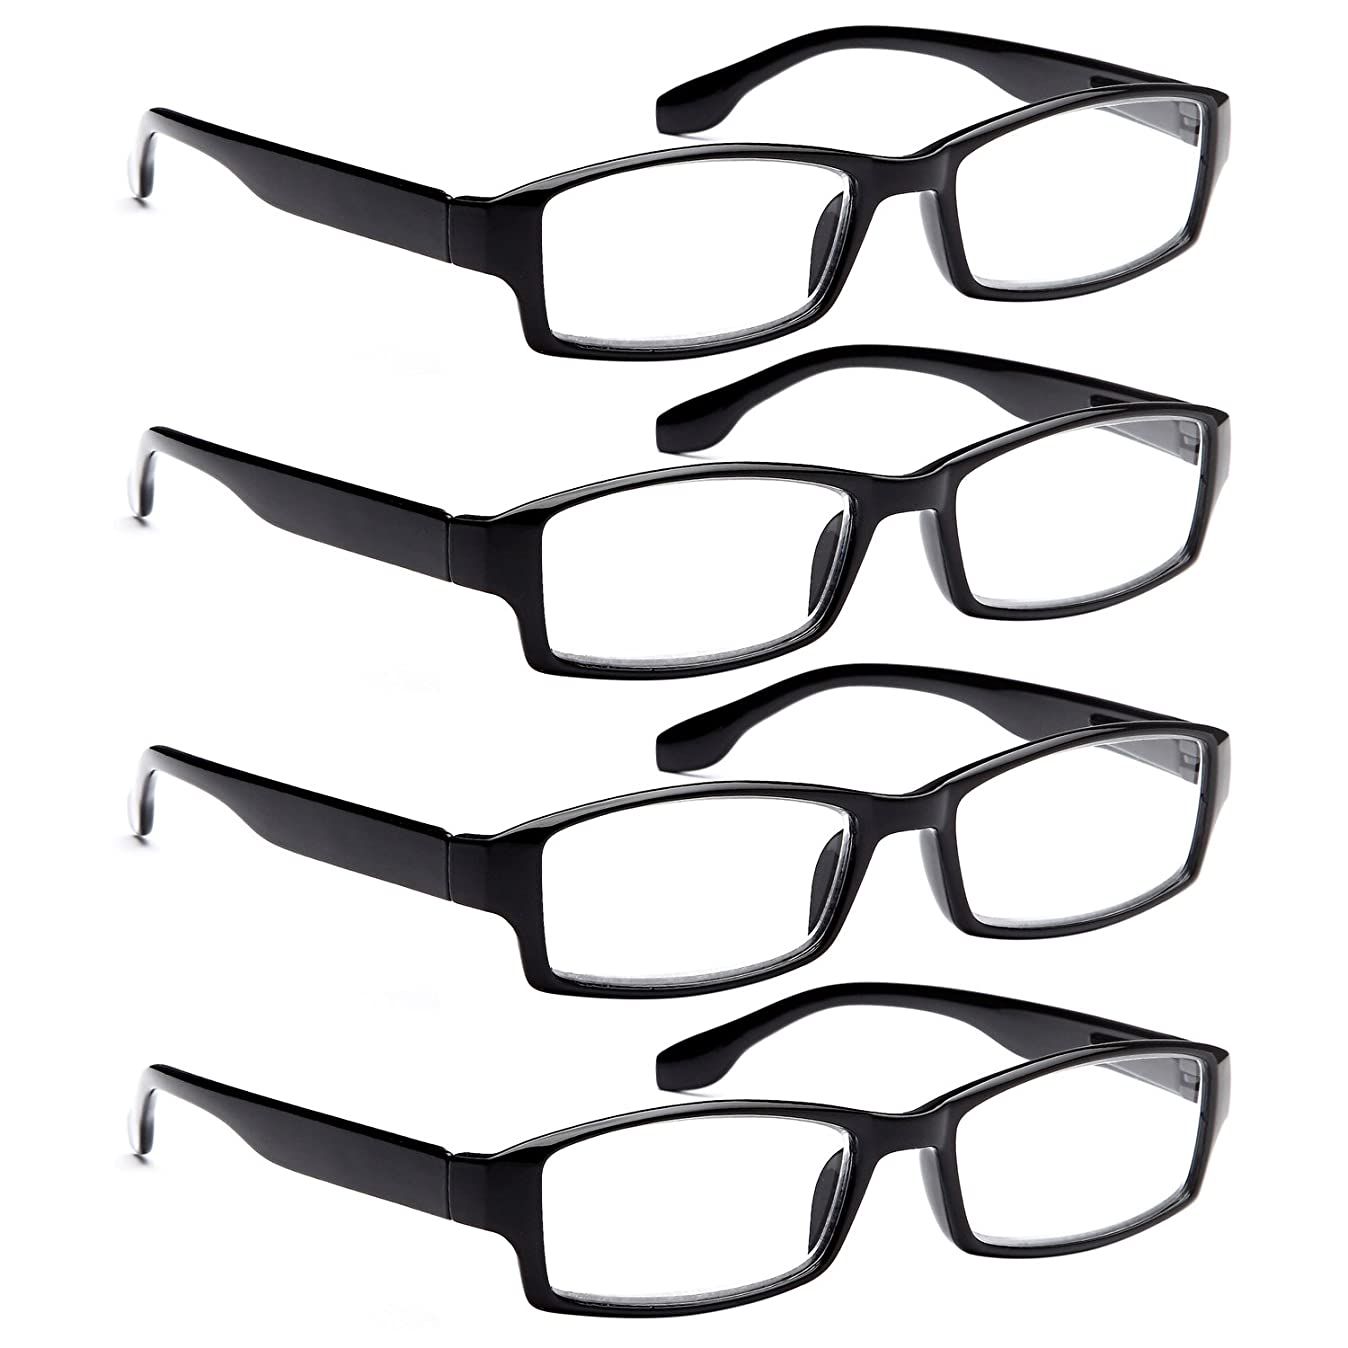 ALTEC Vision Reading Glasses - 4 Pairs Spring Hinge Men and Women Readers 1.25 c3492599624